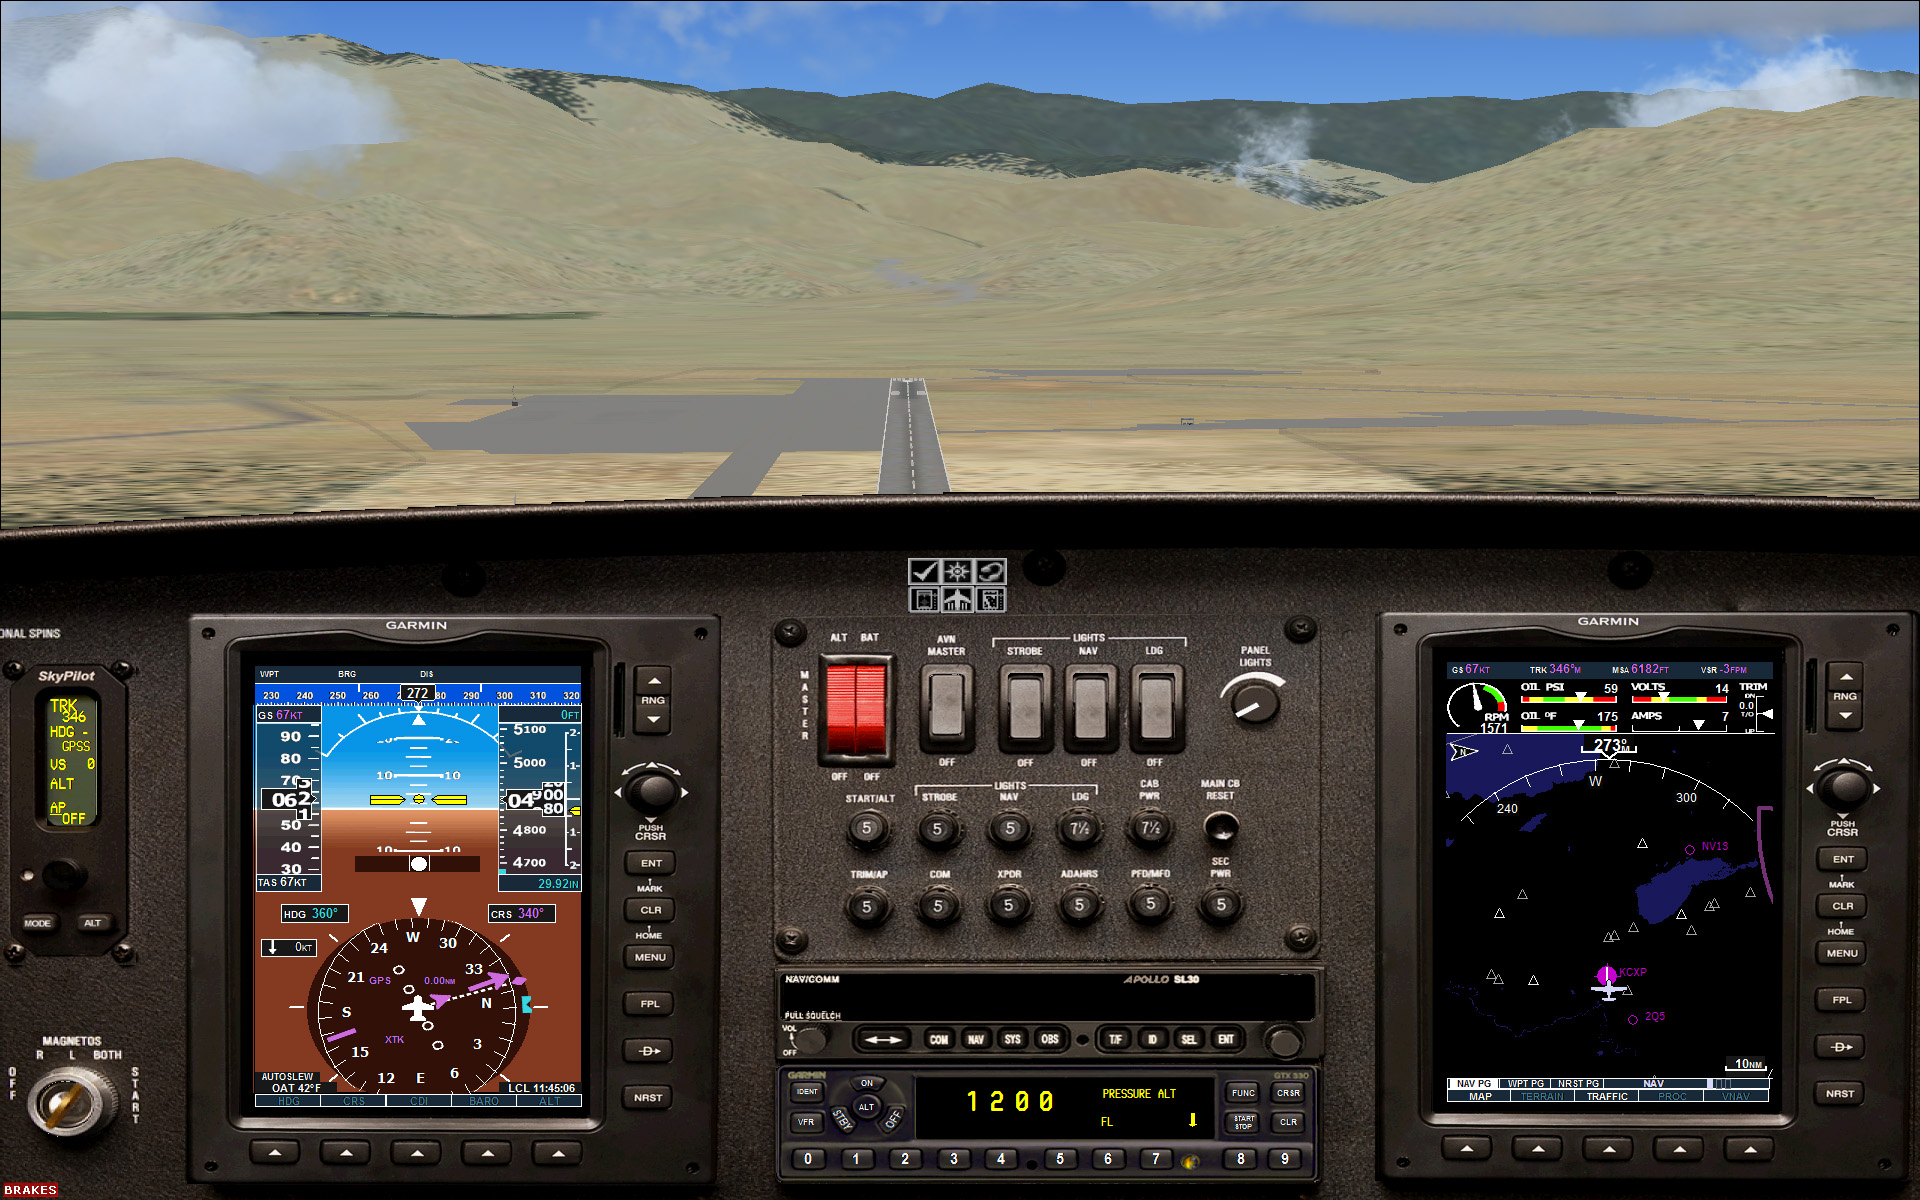 FSX - Cessna Skycatcher, on final